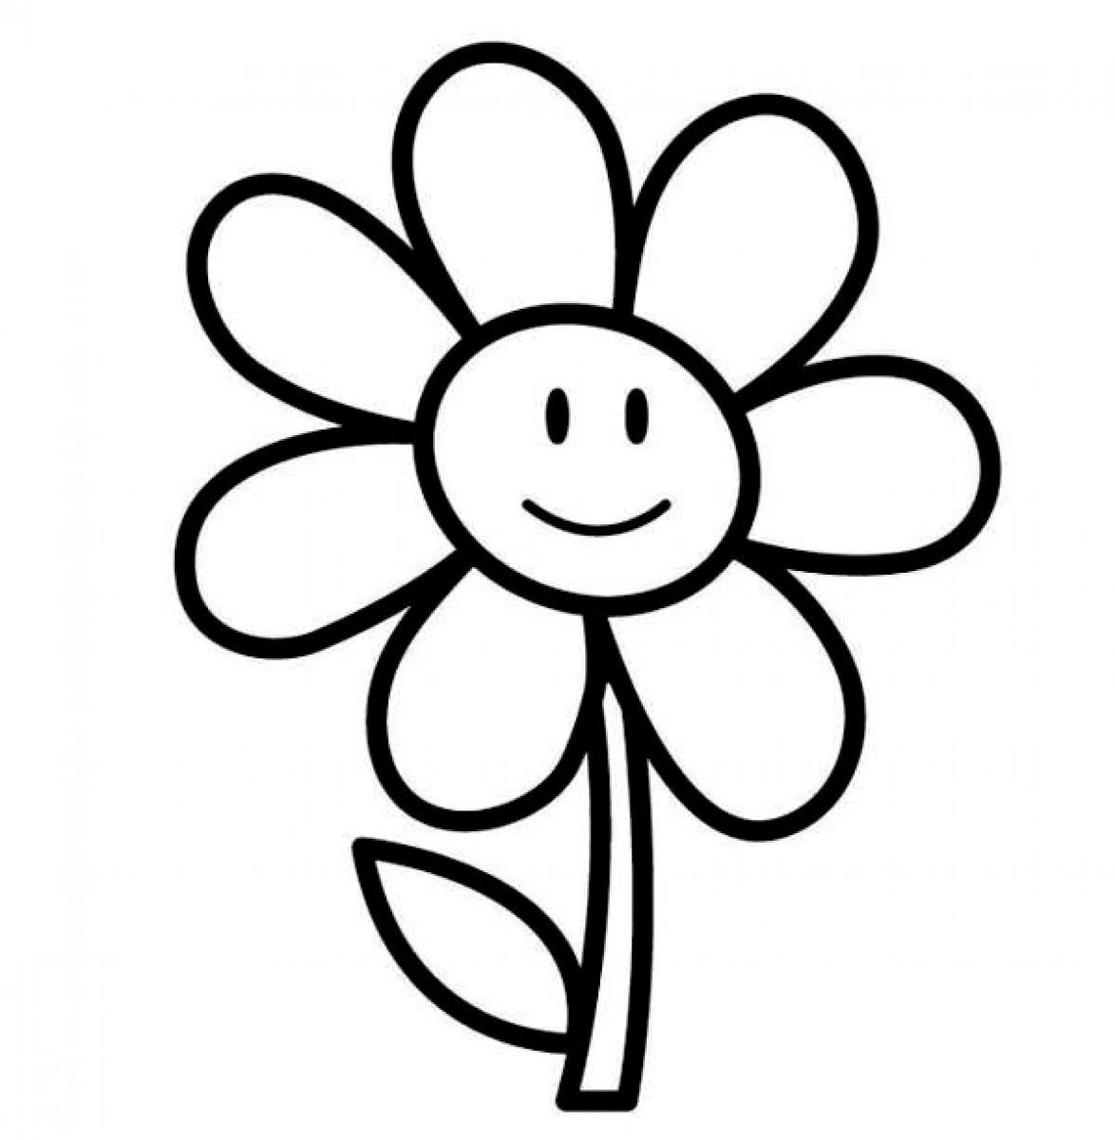 Flower images black and white free download best flower images 1115x1140 free black and white flower clip art mightylinksfo